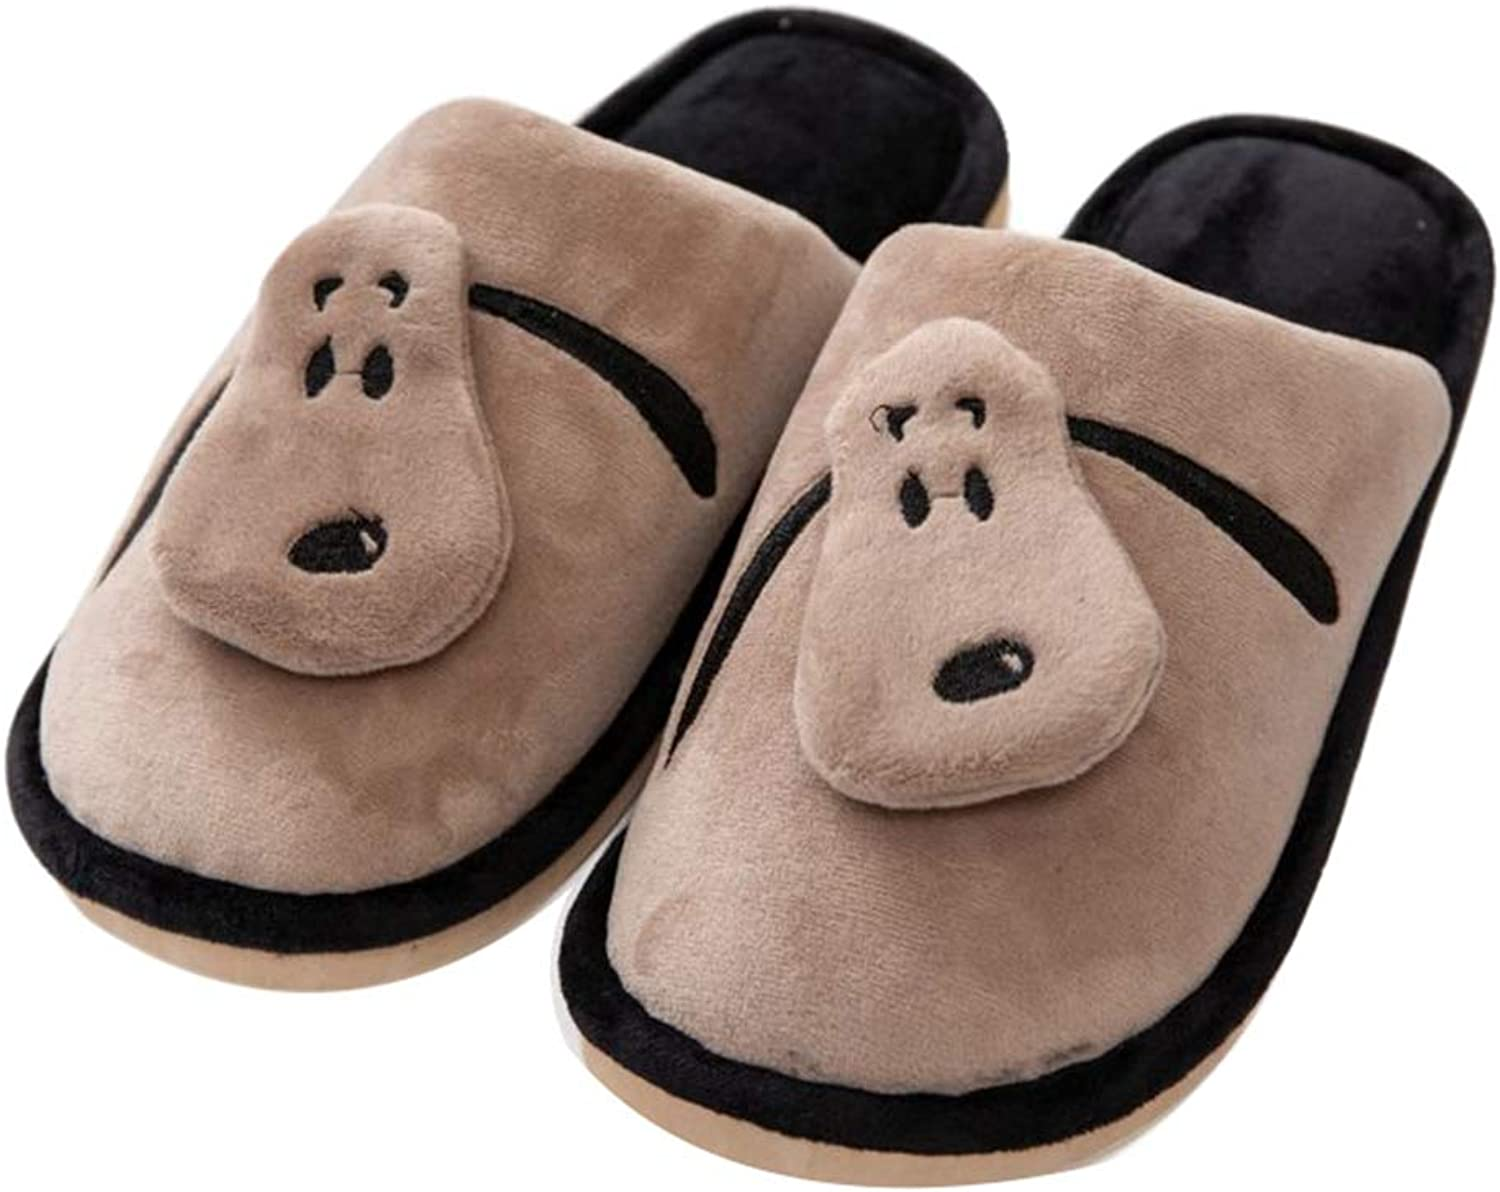 York Zhu Home Slippers for Women,3D Embroidery Animal Winter Warm Plush shoes Non Slip